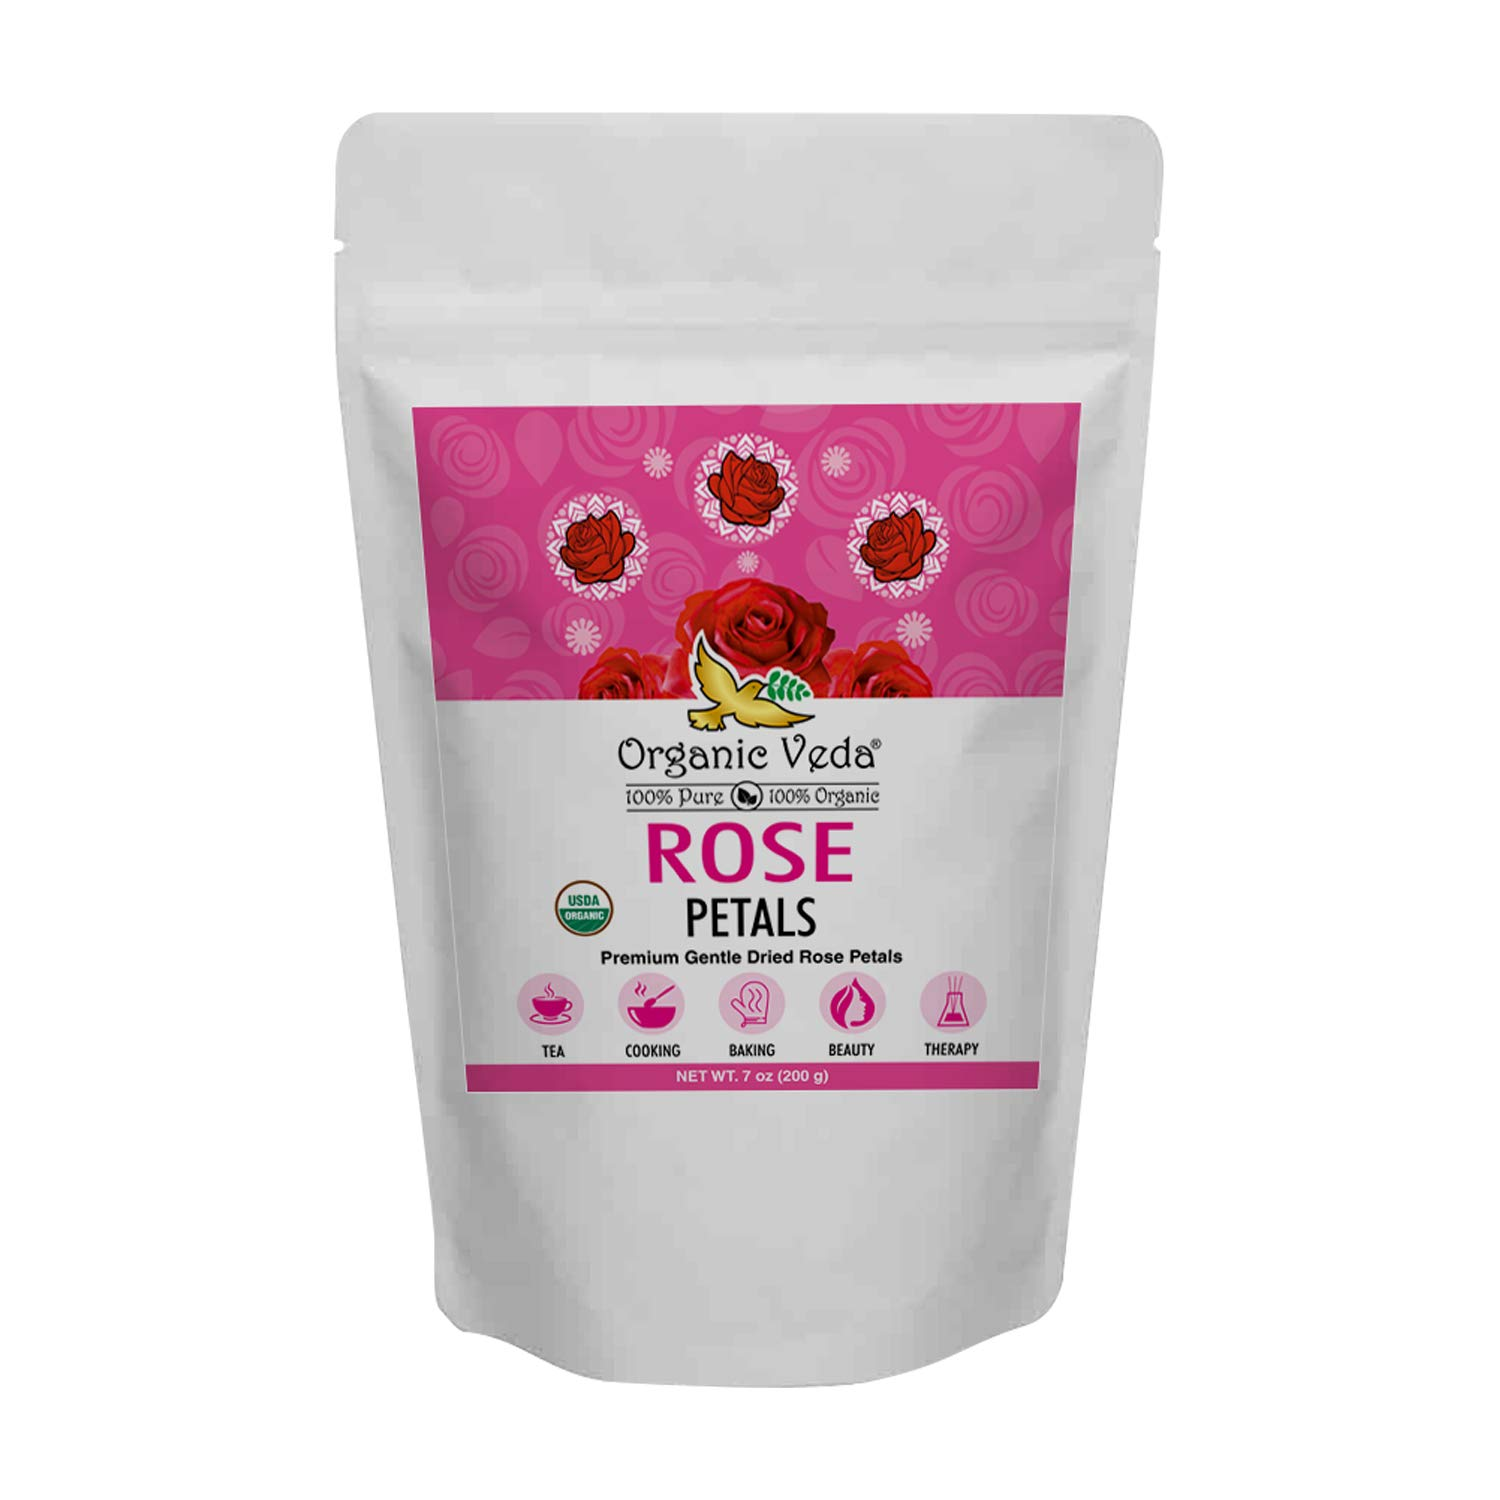 Organic Veda Rose Petal – Pure, Non-GMO, 100% Organic USDA Certified Food Grade Premium Gentle Dried Rose Petals for Tea, Cooking, Baking, Beauty, Therapy & Crafts – 7 Oz (200gm)